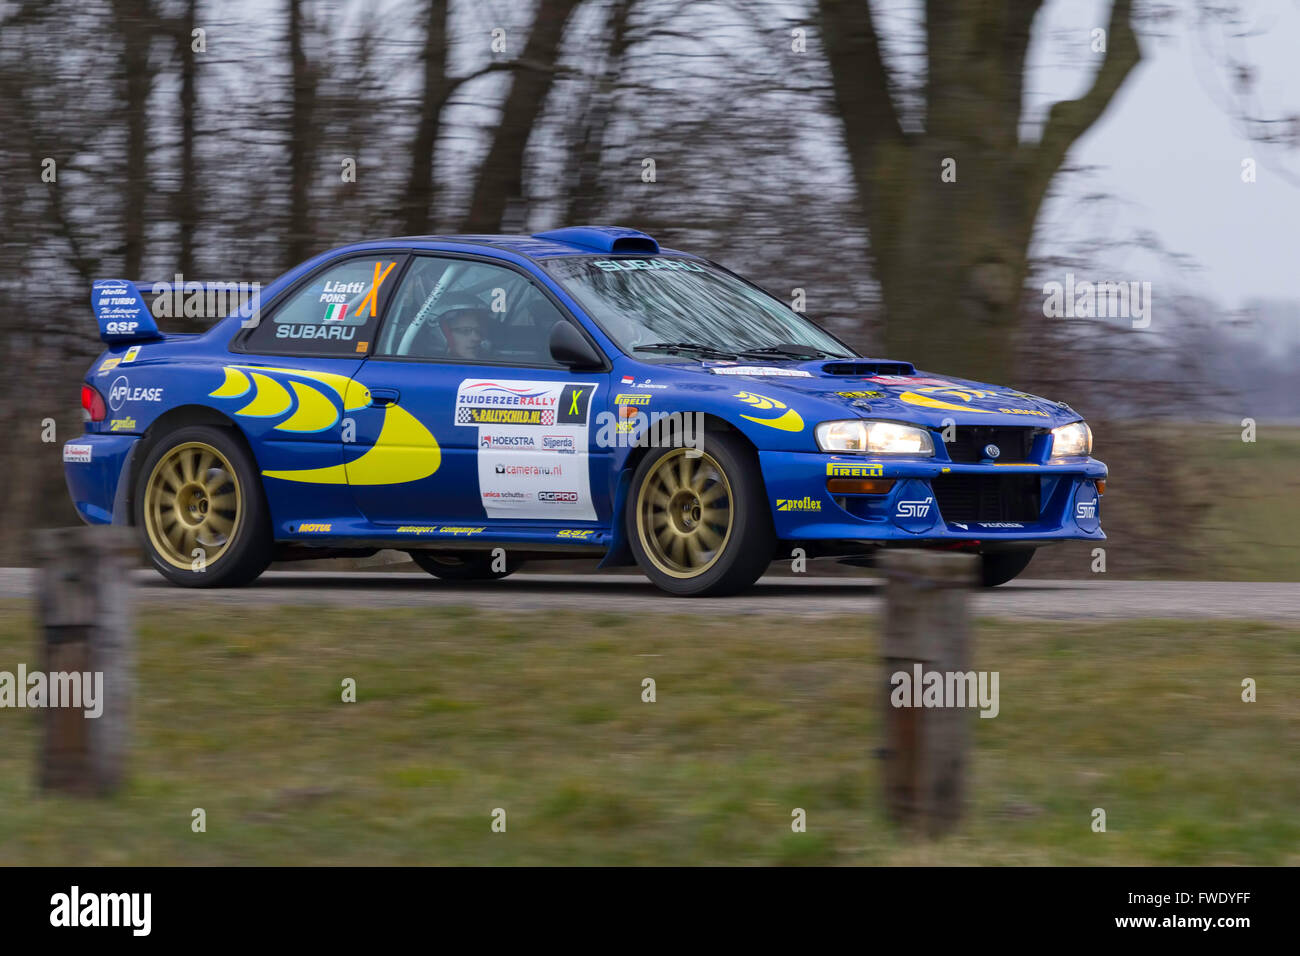 Subaru Rally Car Stock Photo: 101725219 - Alamy